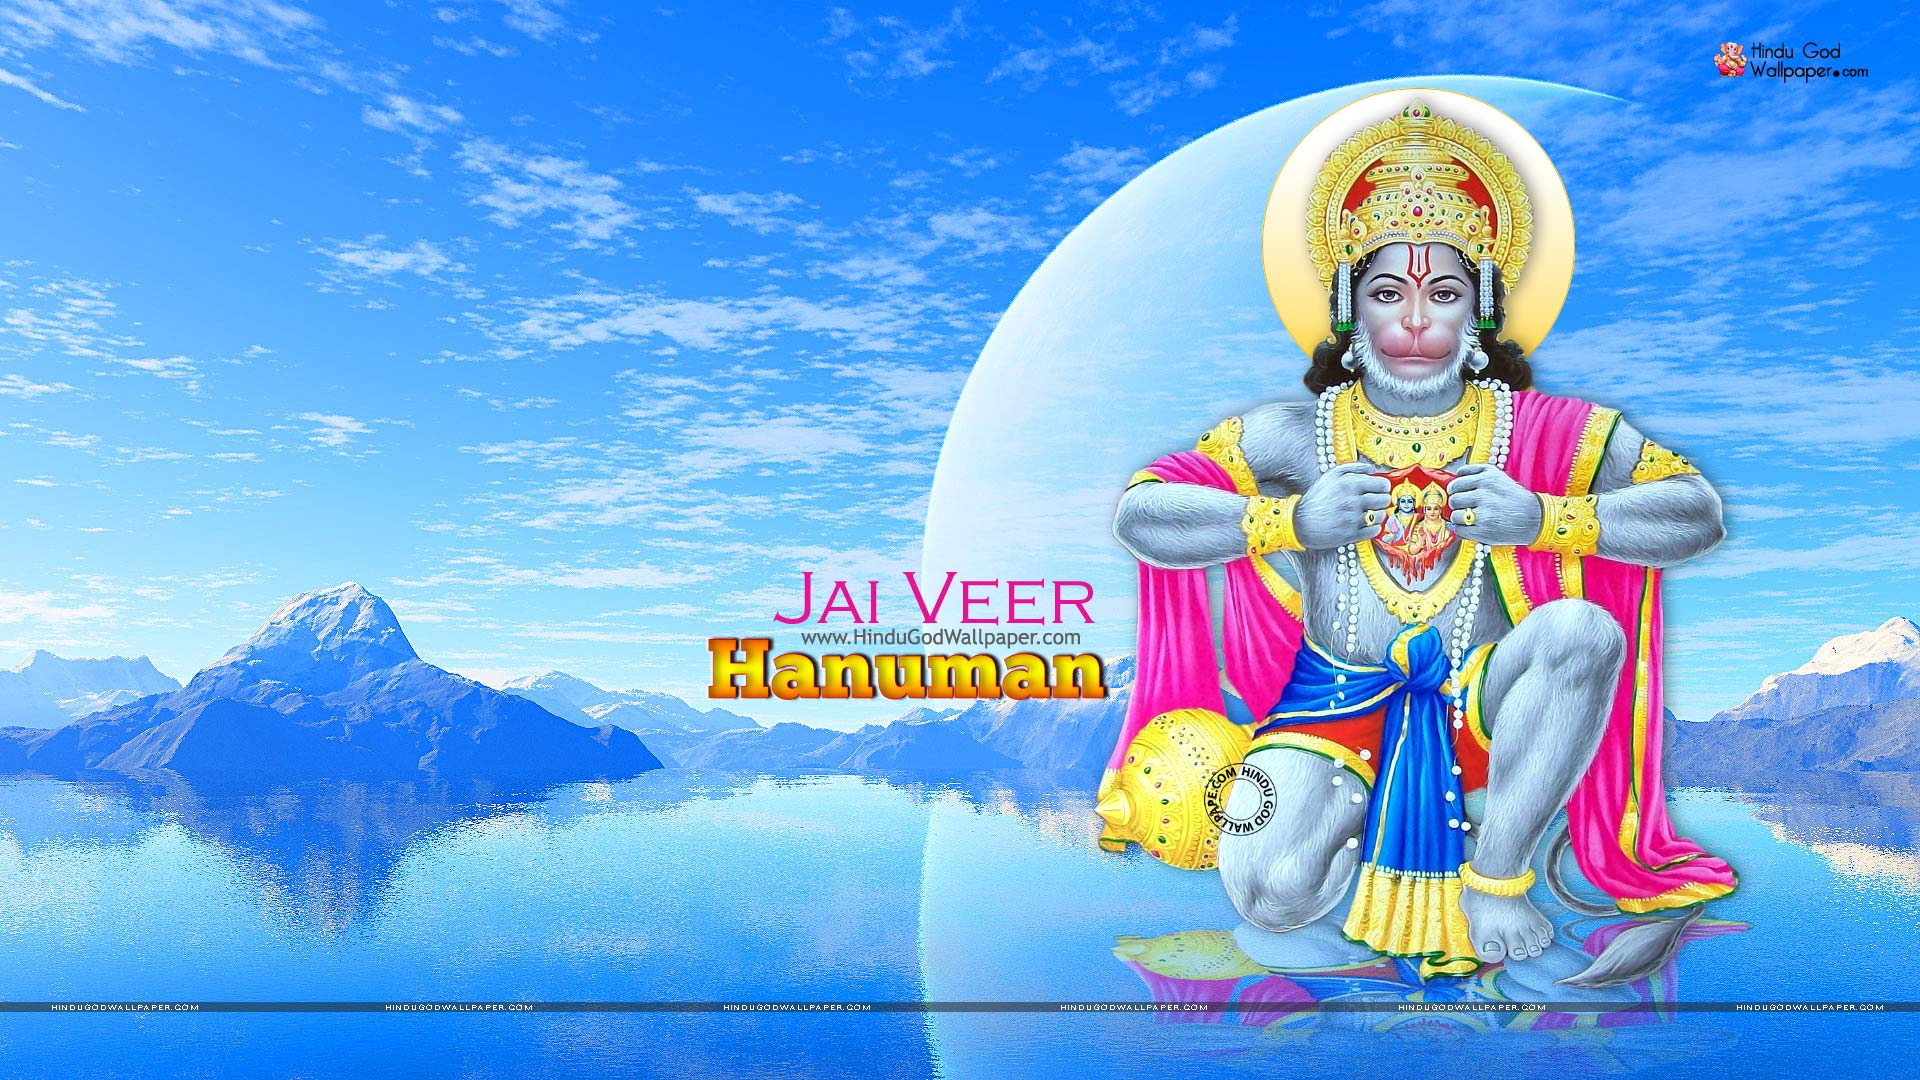 Veer Hanuman Hd Wallpaper Full Size 1080p Download